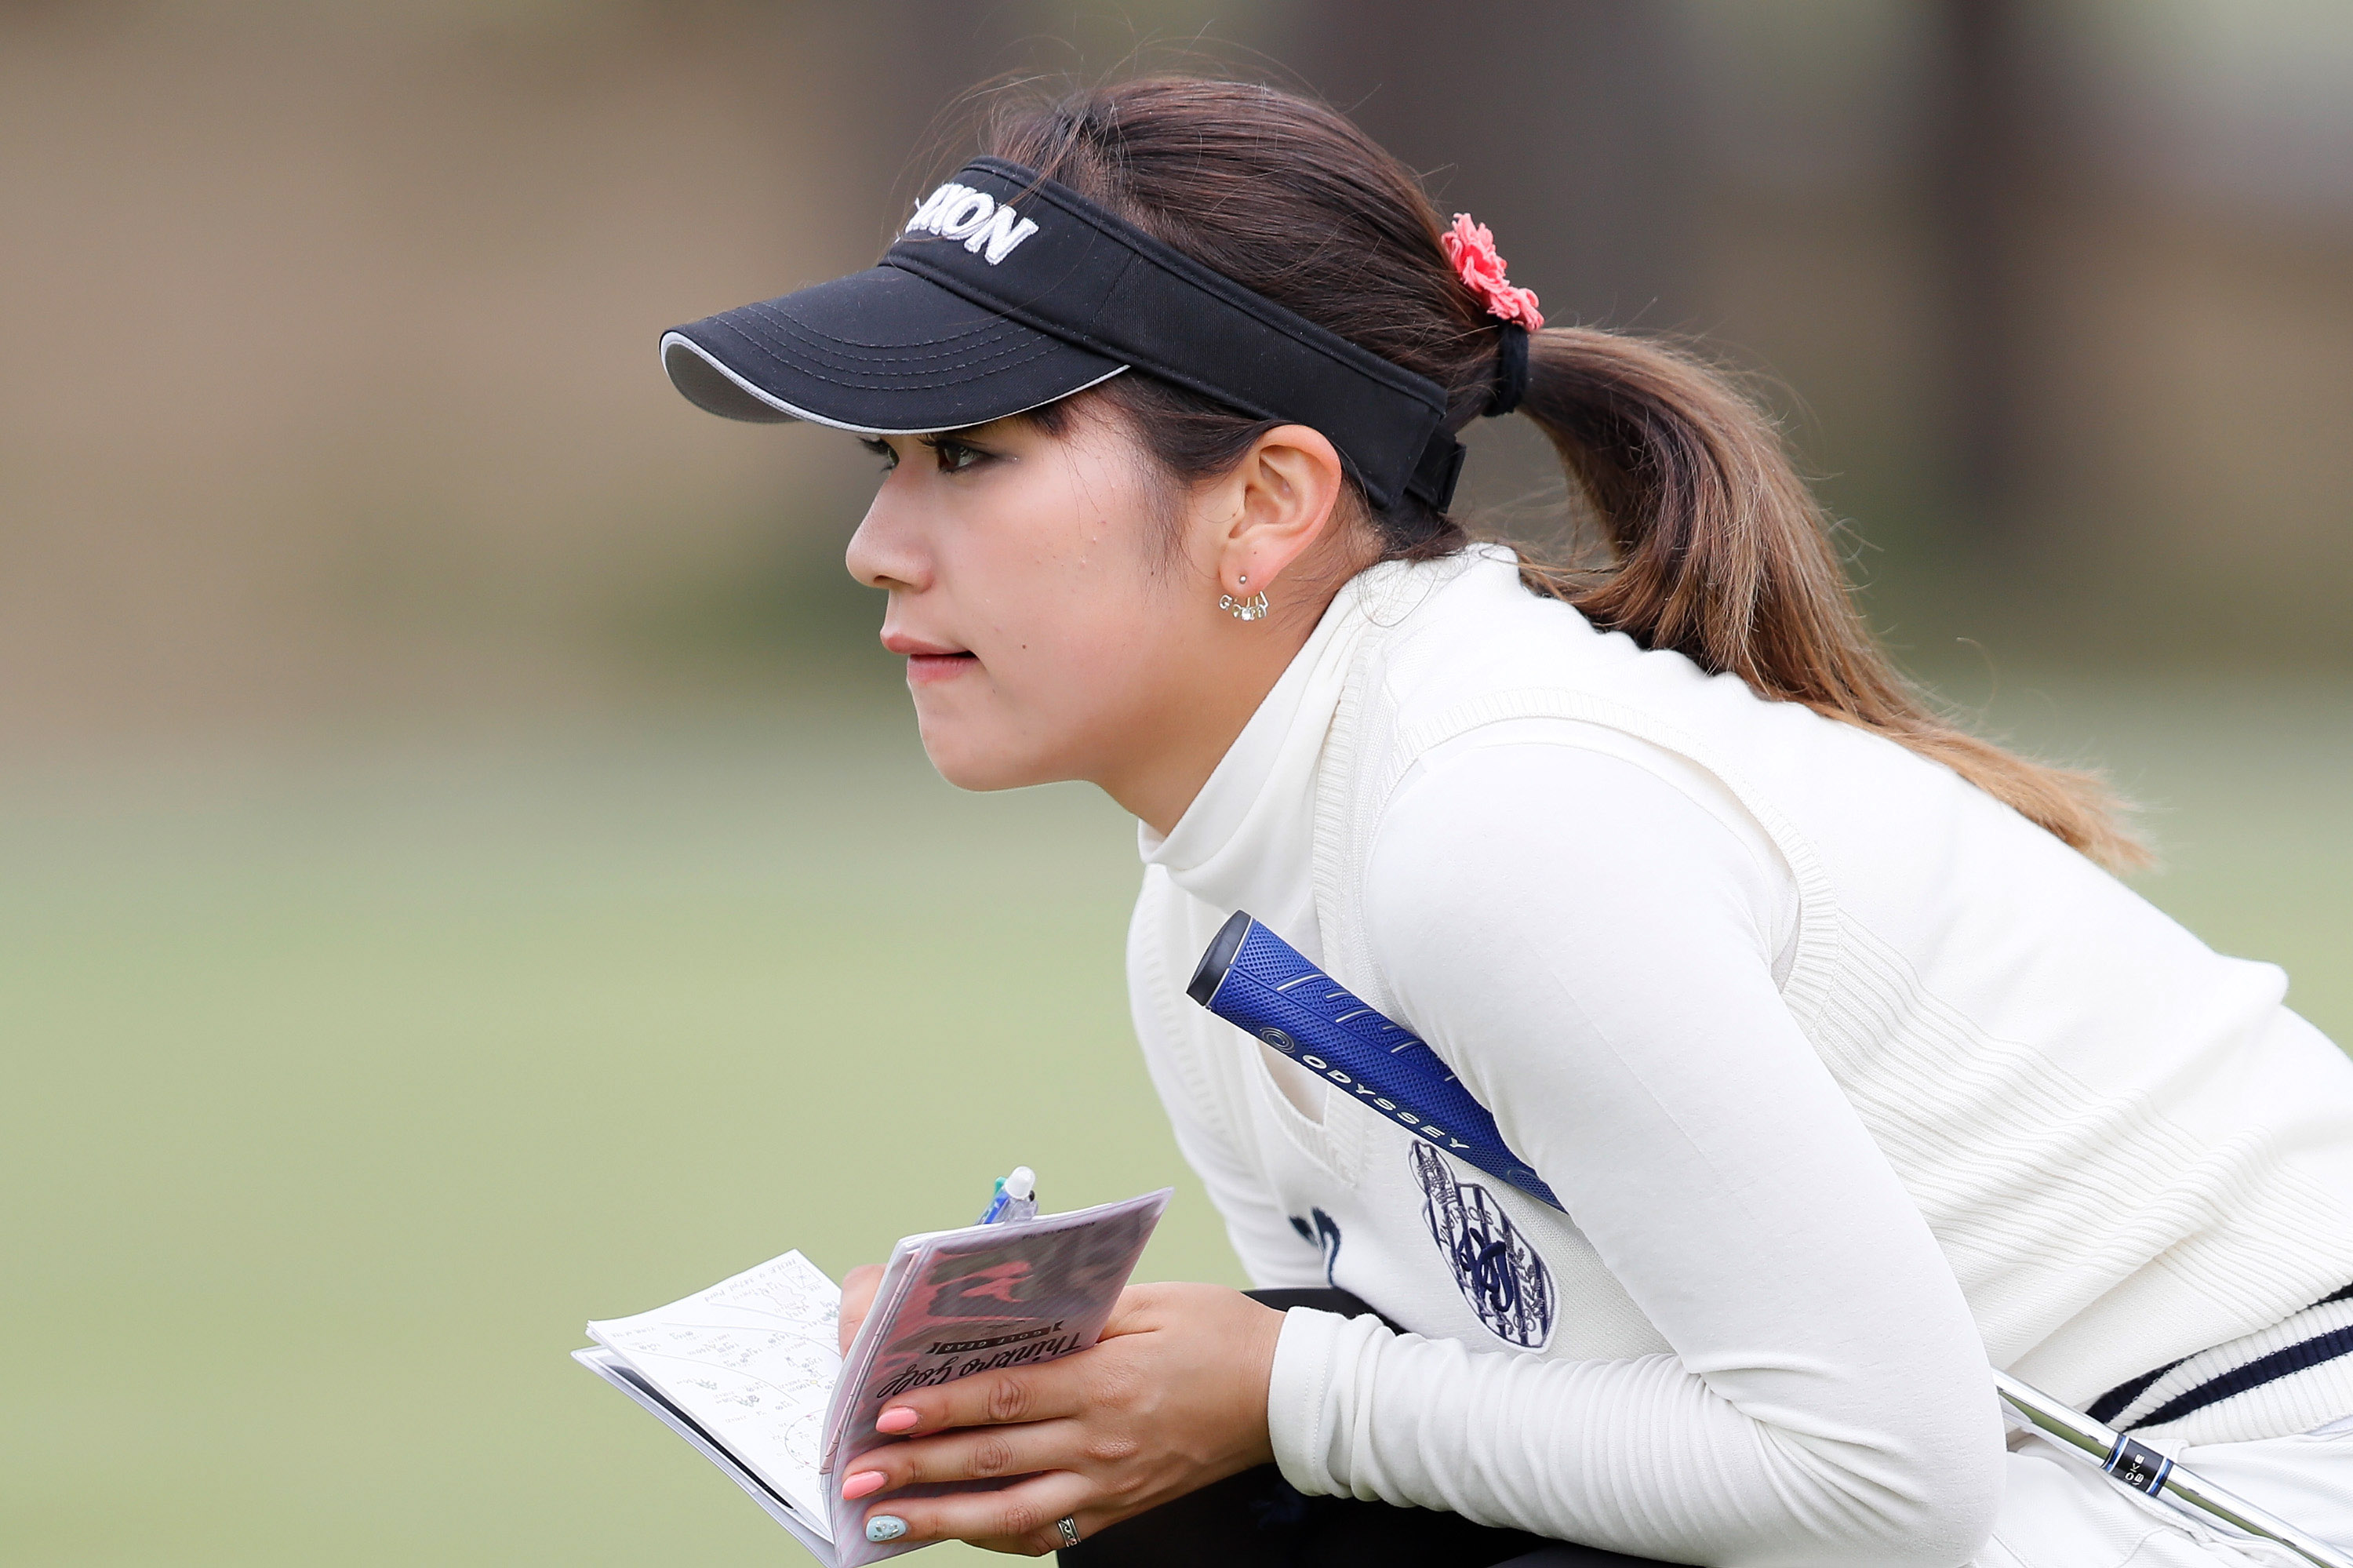 Ayano Yasuda reads a putt. The use of detailed green-reading books has become a golf controversy. (Ken Ishii/Getty Images)